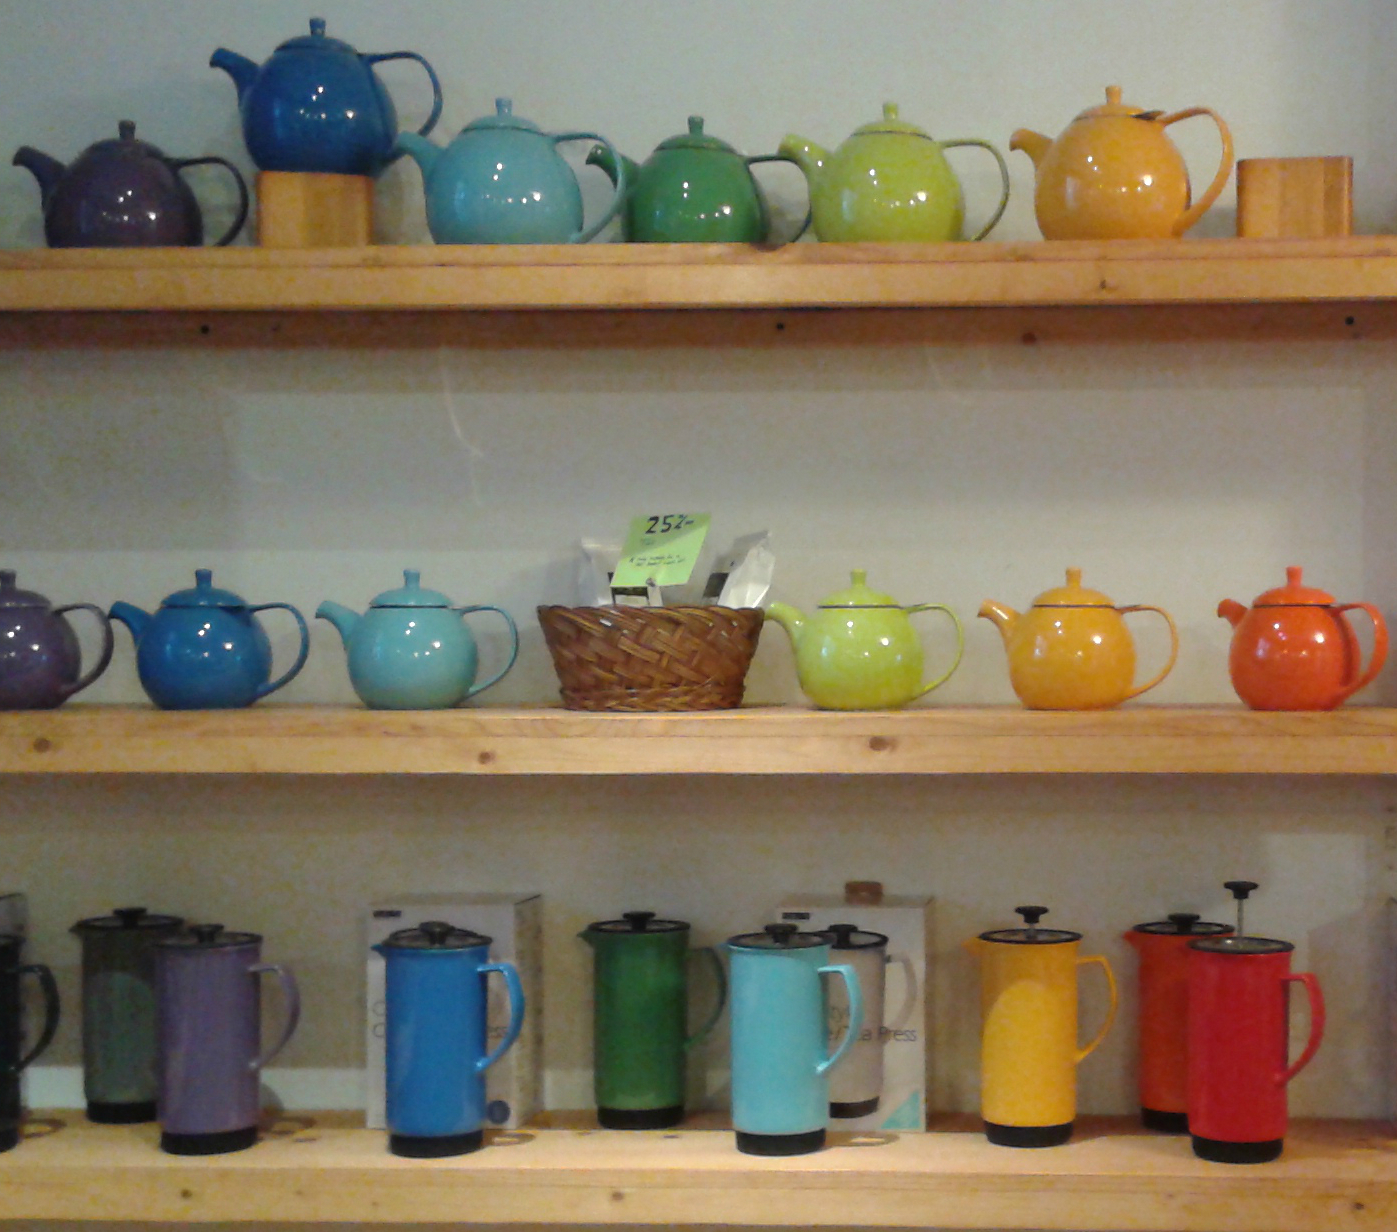 Several colorful teapots sit on a shelf in Socra-tea.